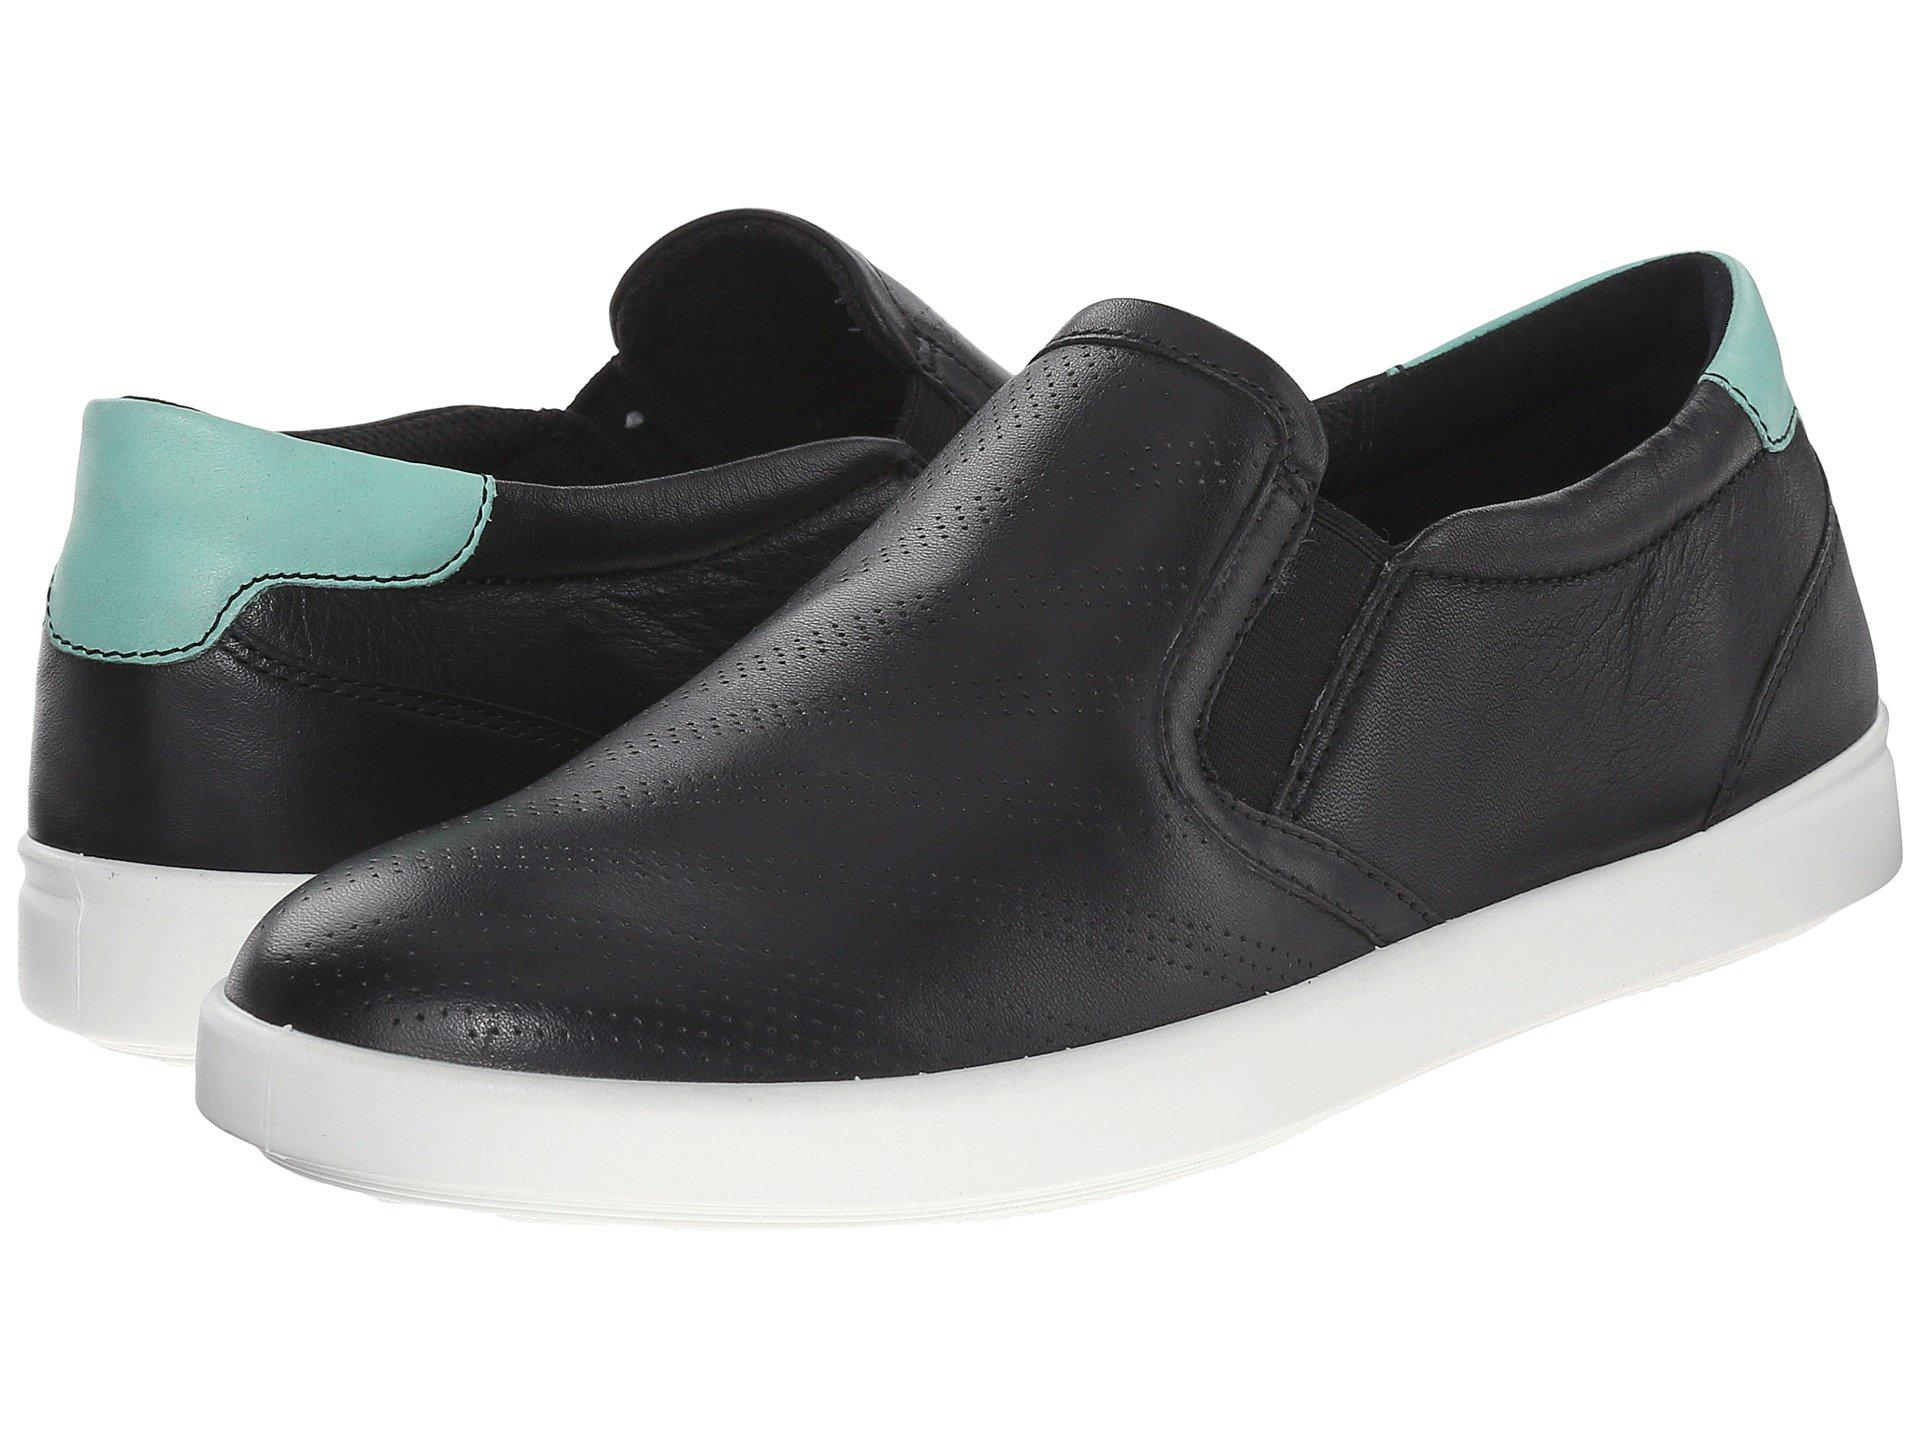 best service 15d6a 7f11d ecco-BlackGranite-Green-Aimee-Sport-Slip-on-blackgranite-Green-Womens-Slip-On- Shoes.jpeg